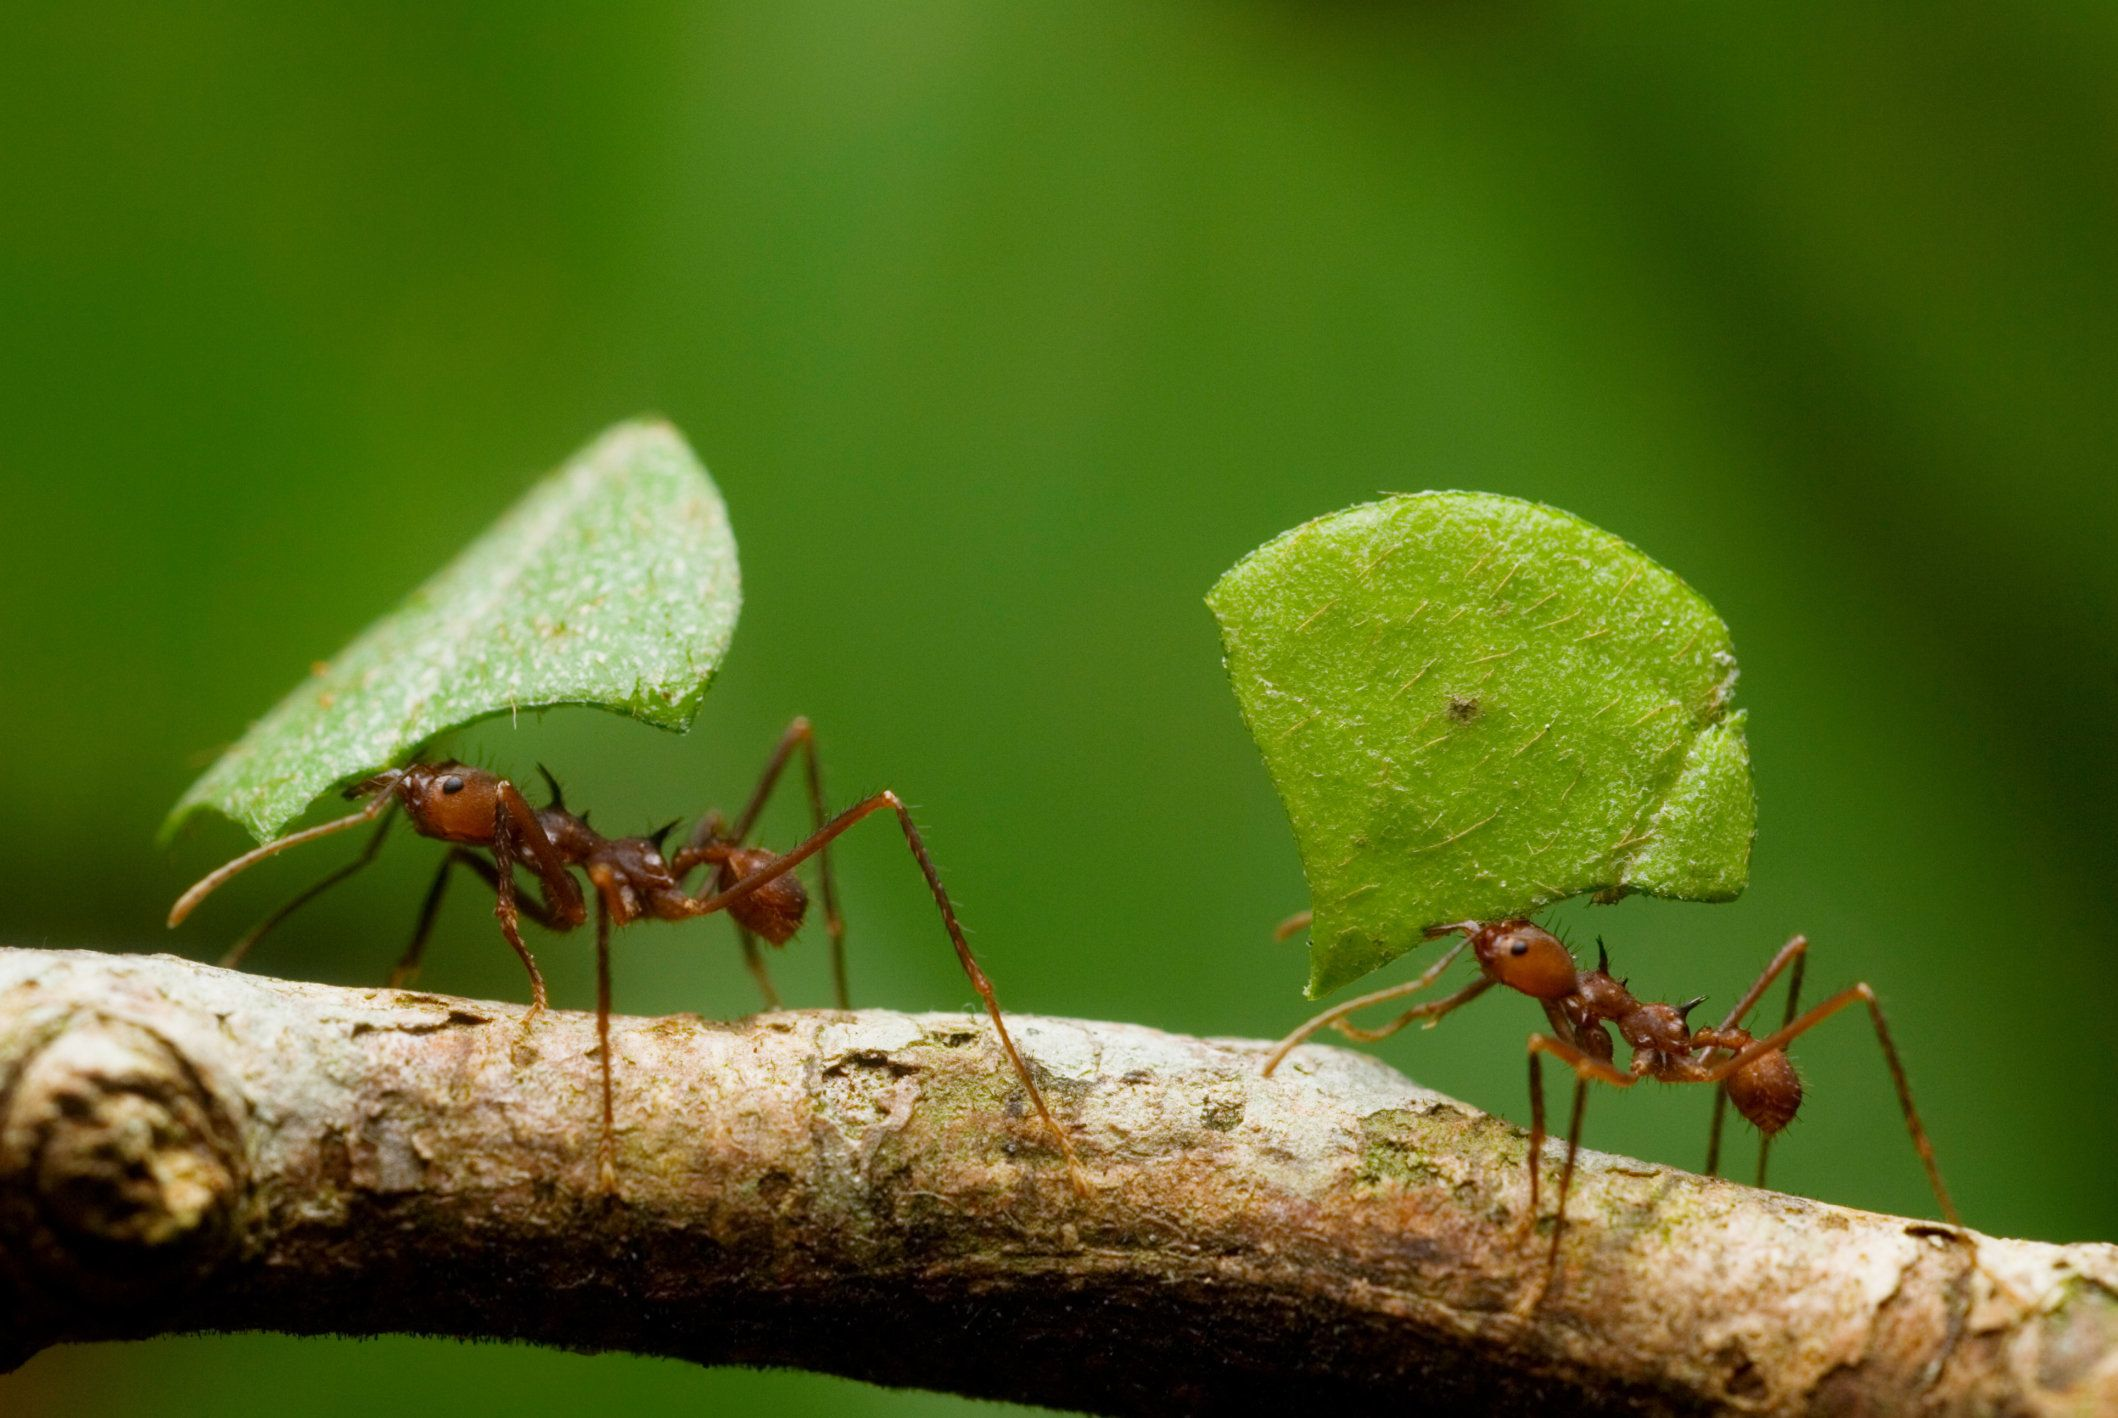 Leaf-cutter Ants (Atta sp.), Yavari River, Peruvian Amazon Rainforest.